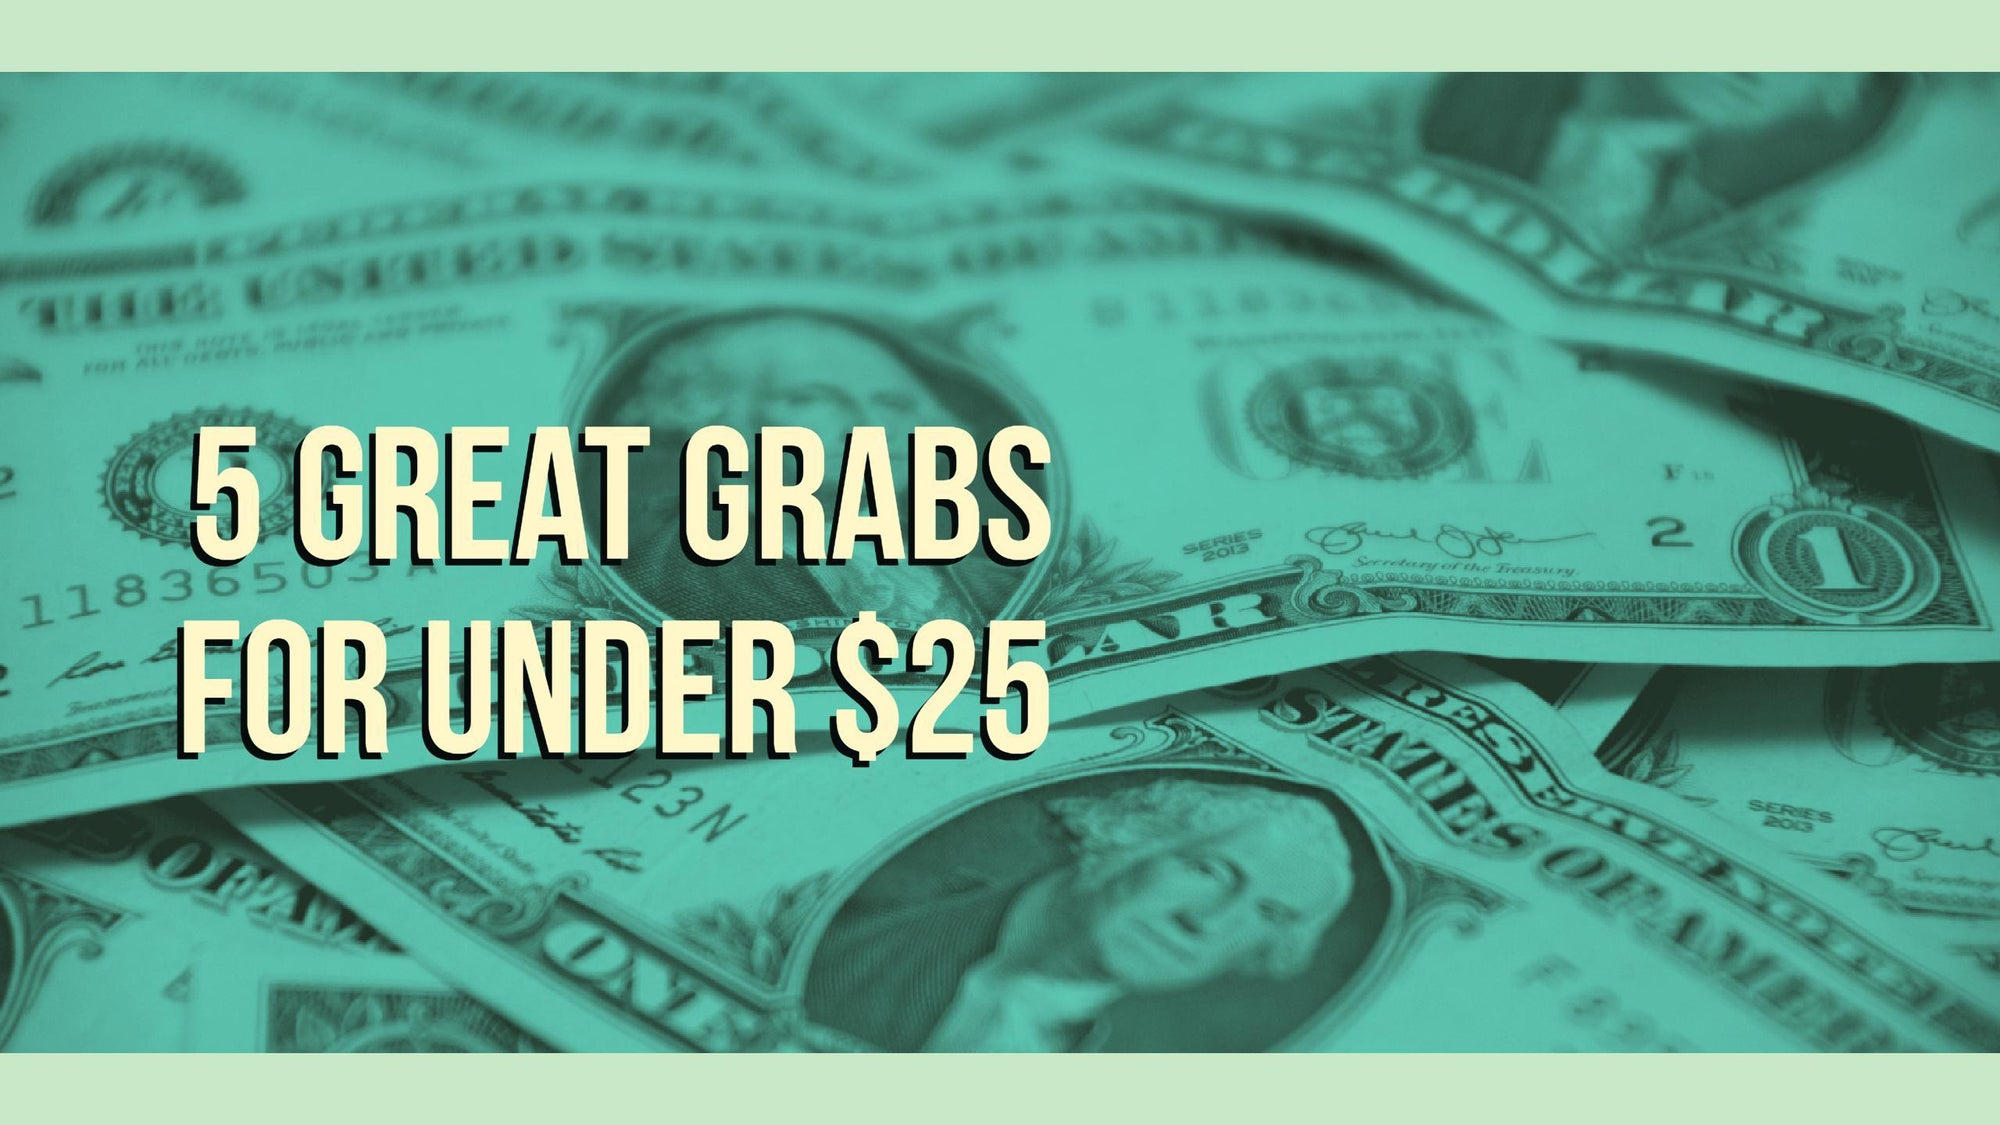 5 Great Grabs for Under $25